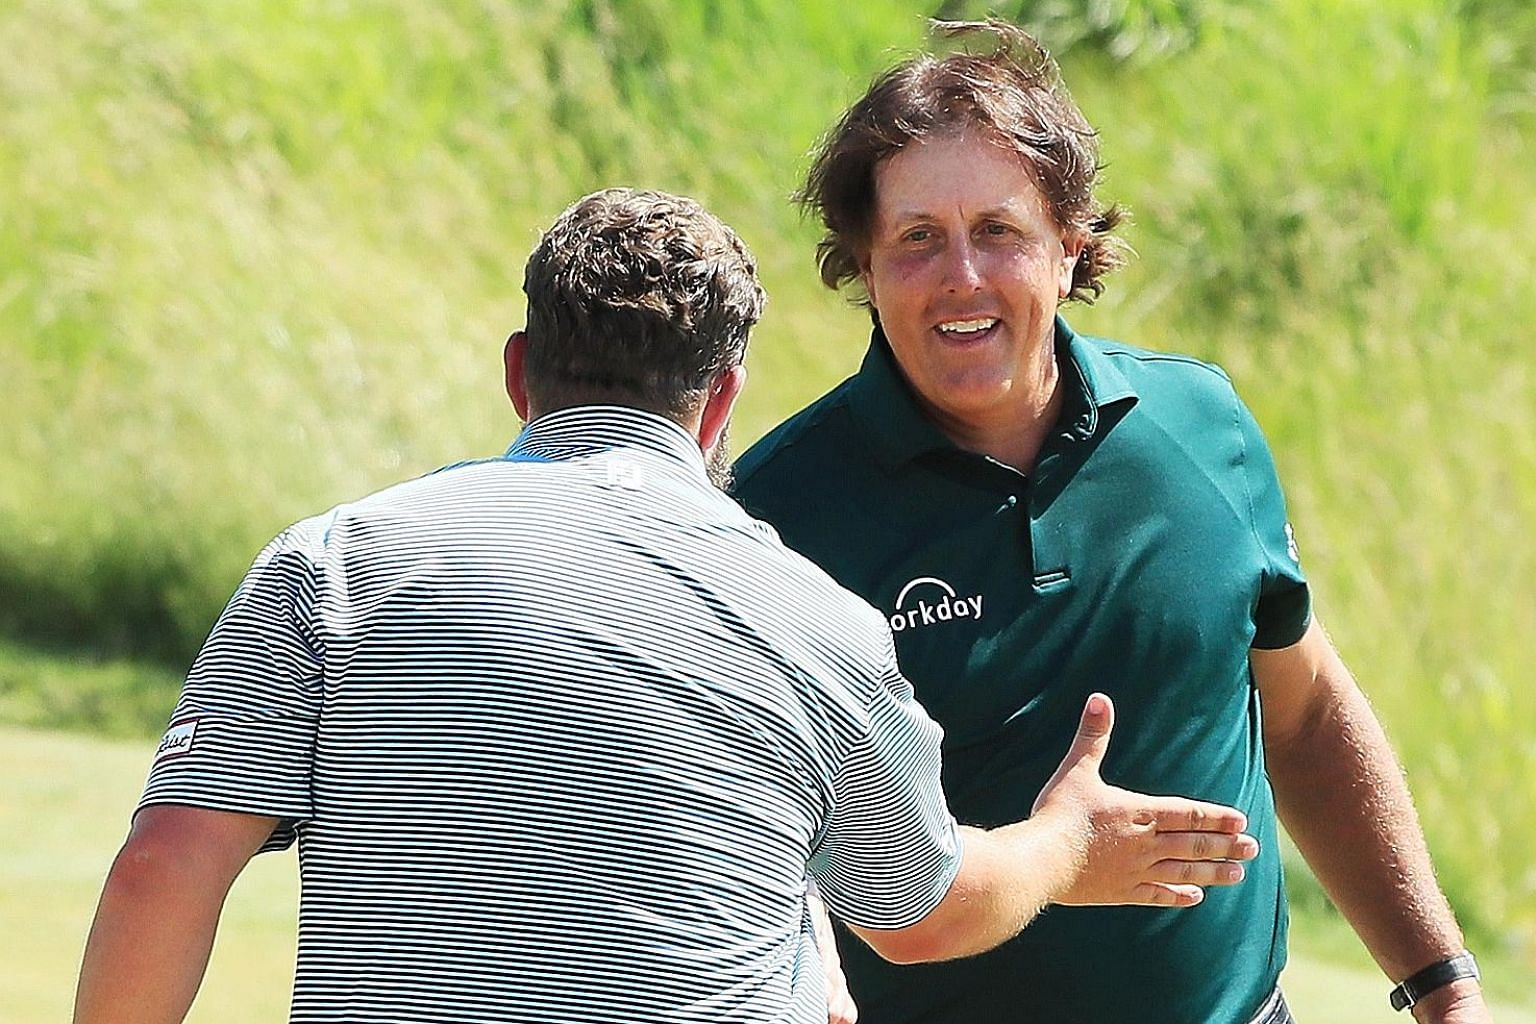 Andrew Johnston and Phil Mickelson shake hands on the 18th green during the third round of the US Open on Saturday. Johnston stopped short of condemning the American, who received a two-stroke penalty.